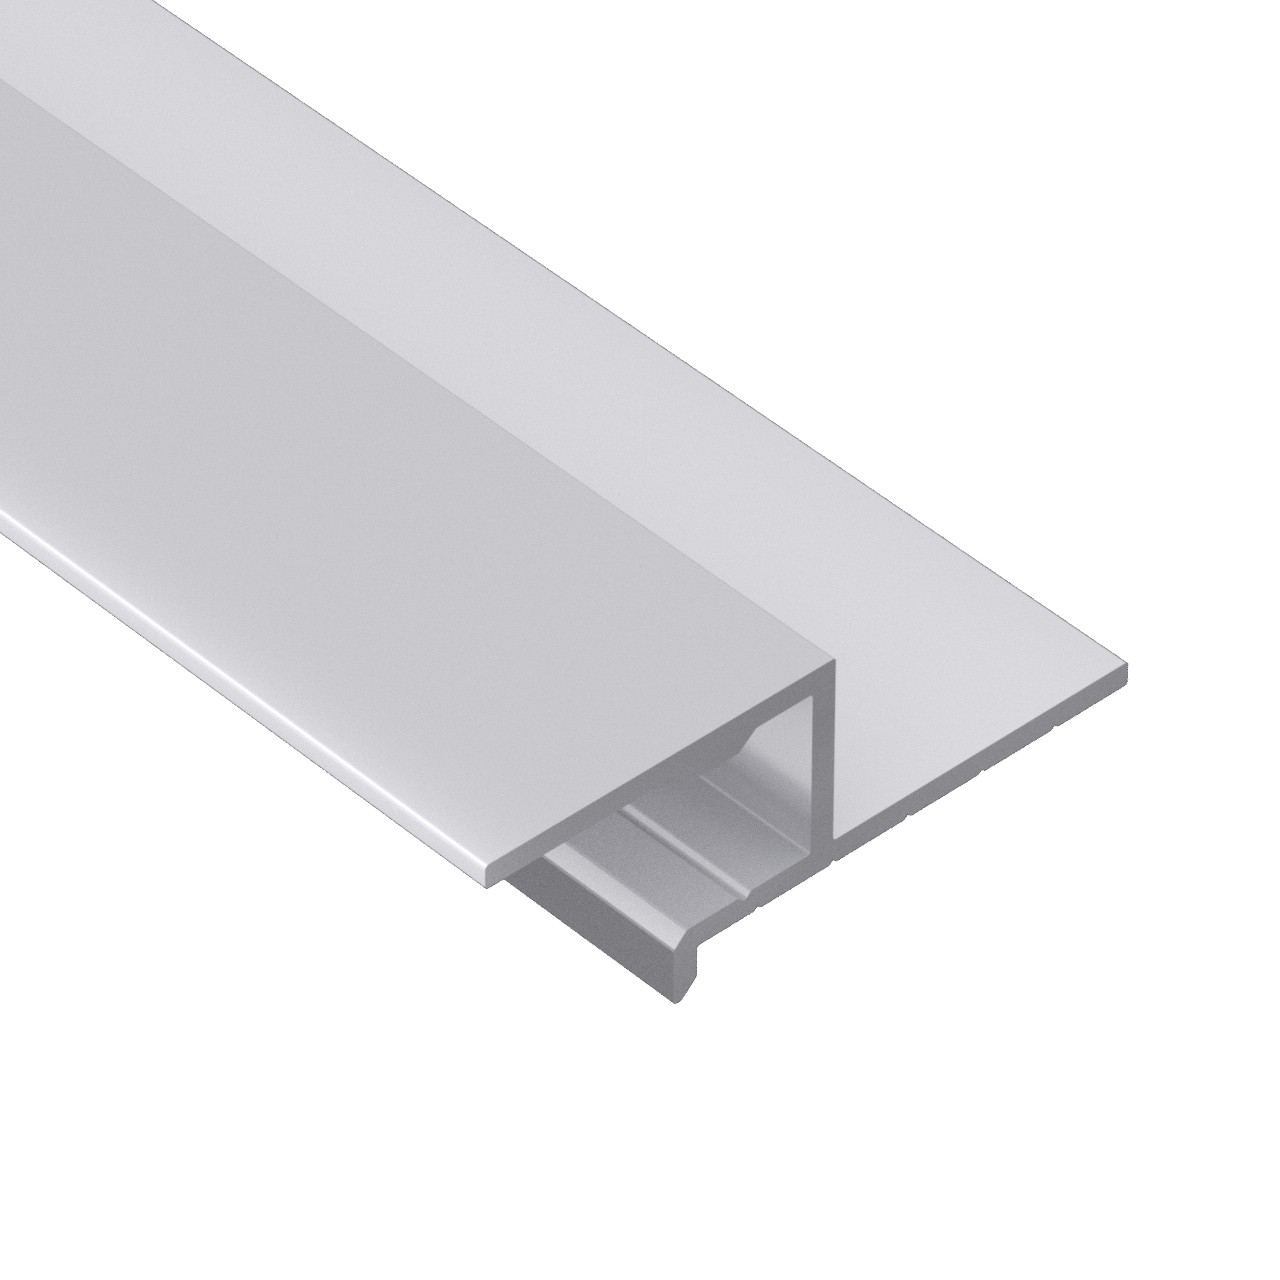 CT8 Trimless Aluminium Extrusions for cove ceilings 42.5x12mm